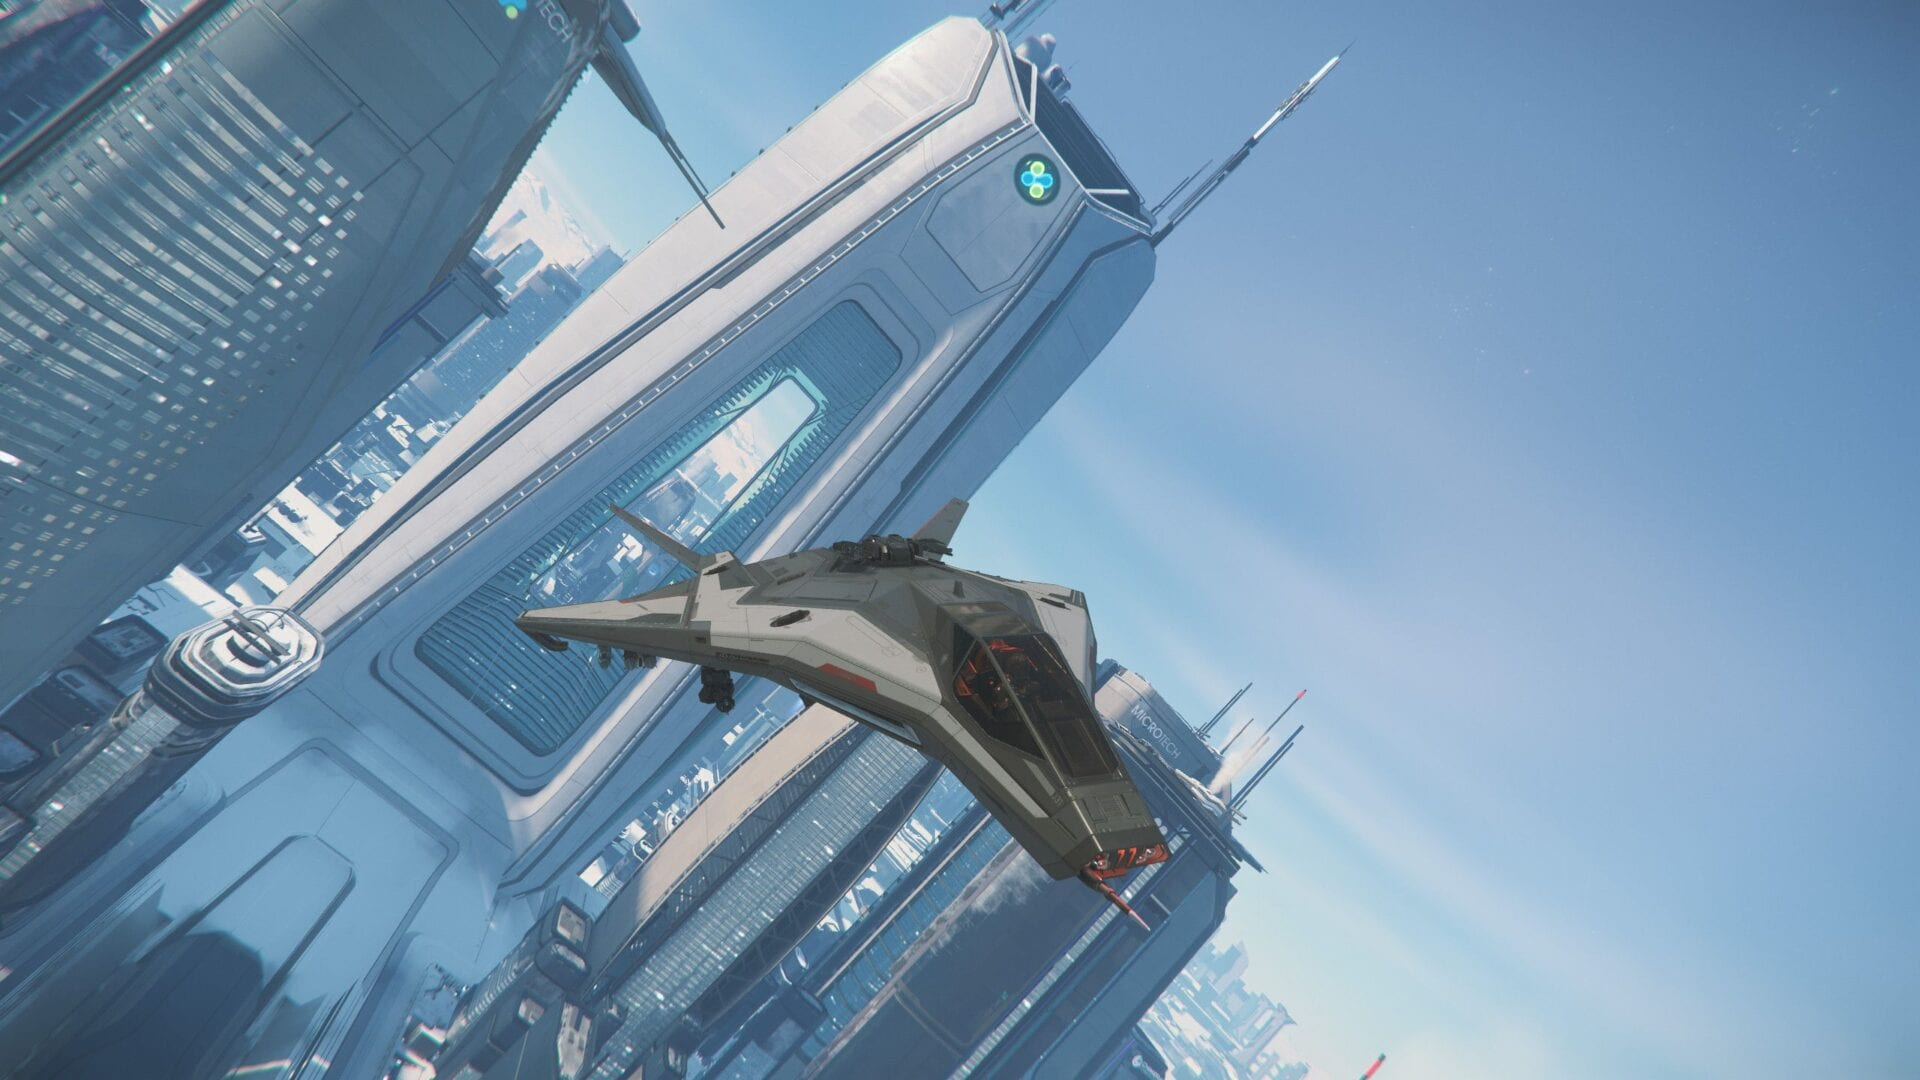 Is Flying in Star Citizen Actually Fun and Exciting?